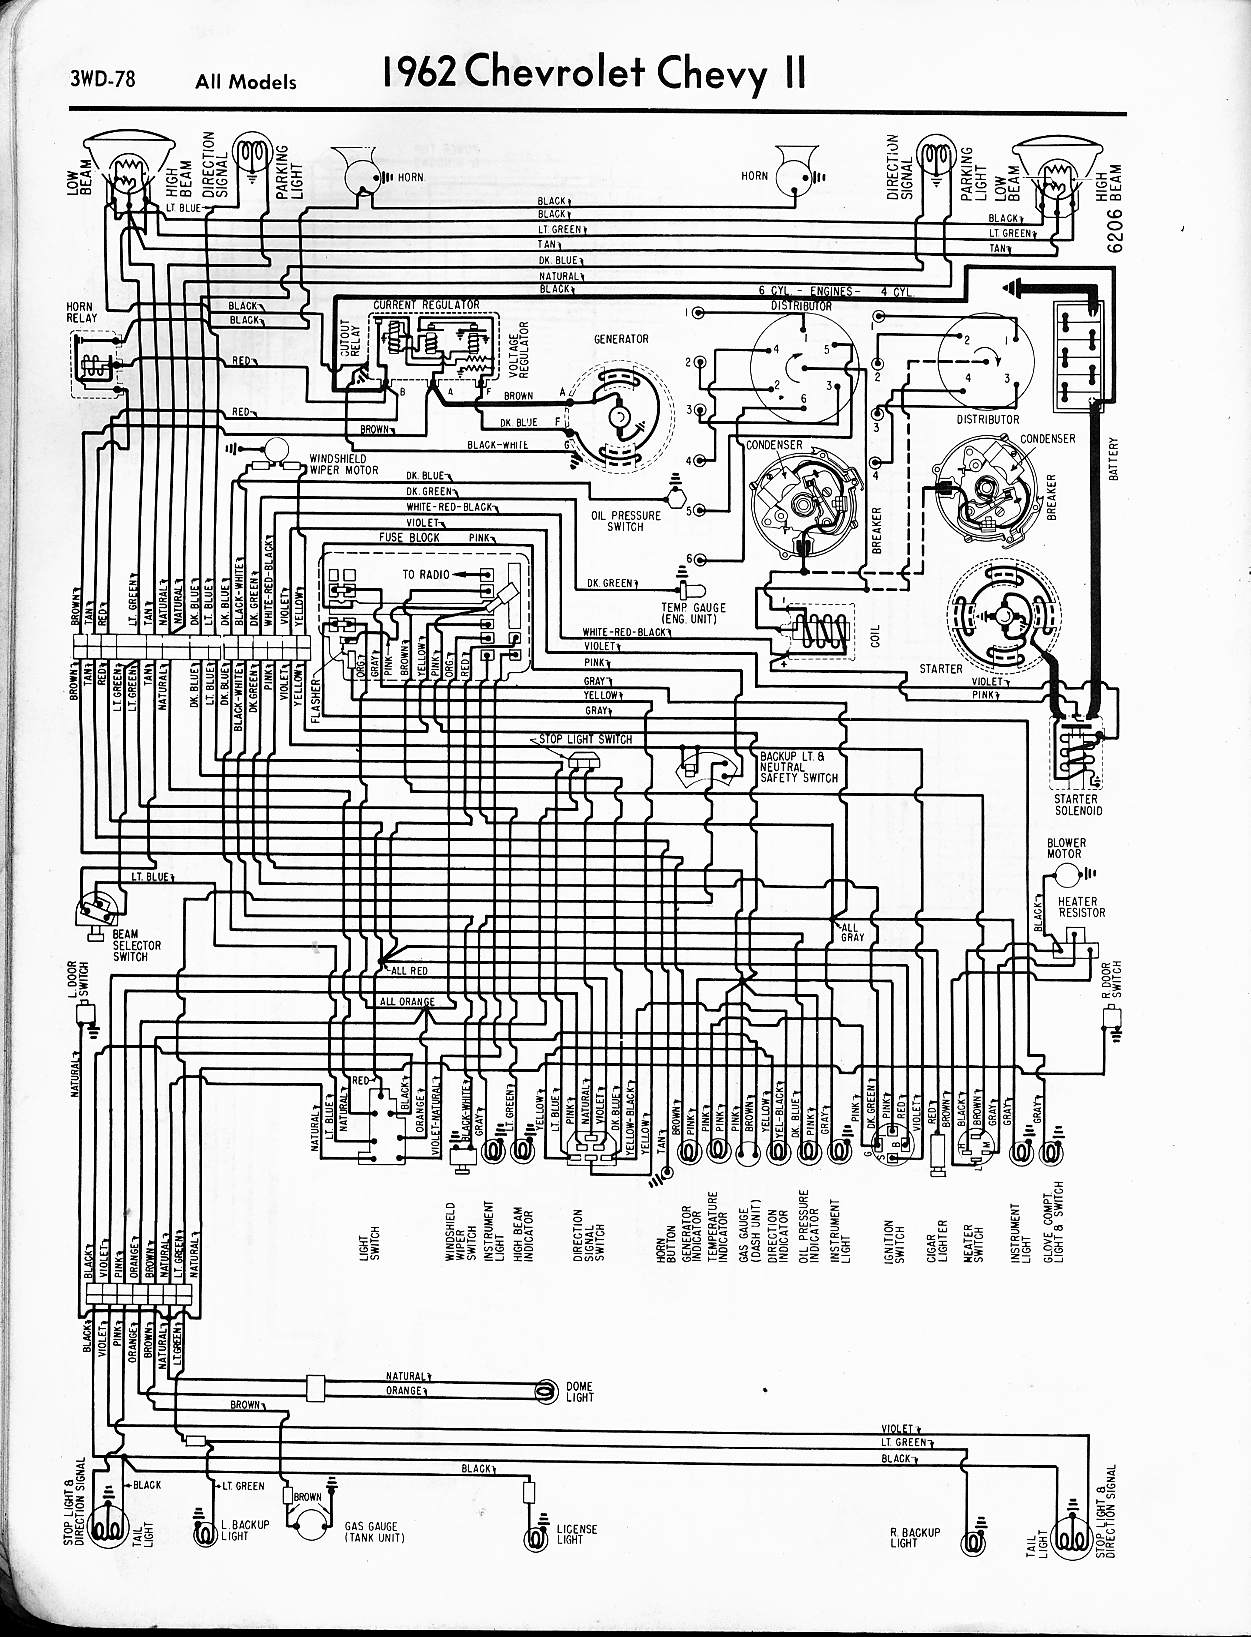 Phenomenal 1976 Nova Wiring Diagram Wiring Diagram Tutorial Wiring Digital Resources Indicompassionincorg